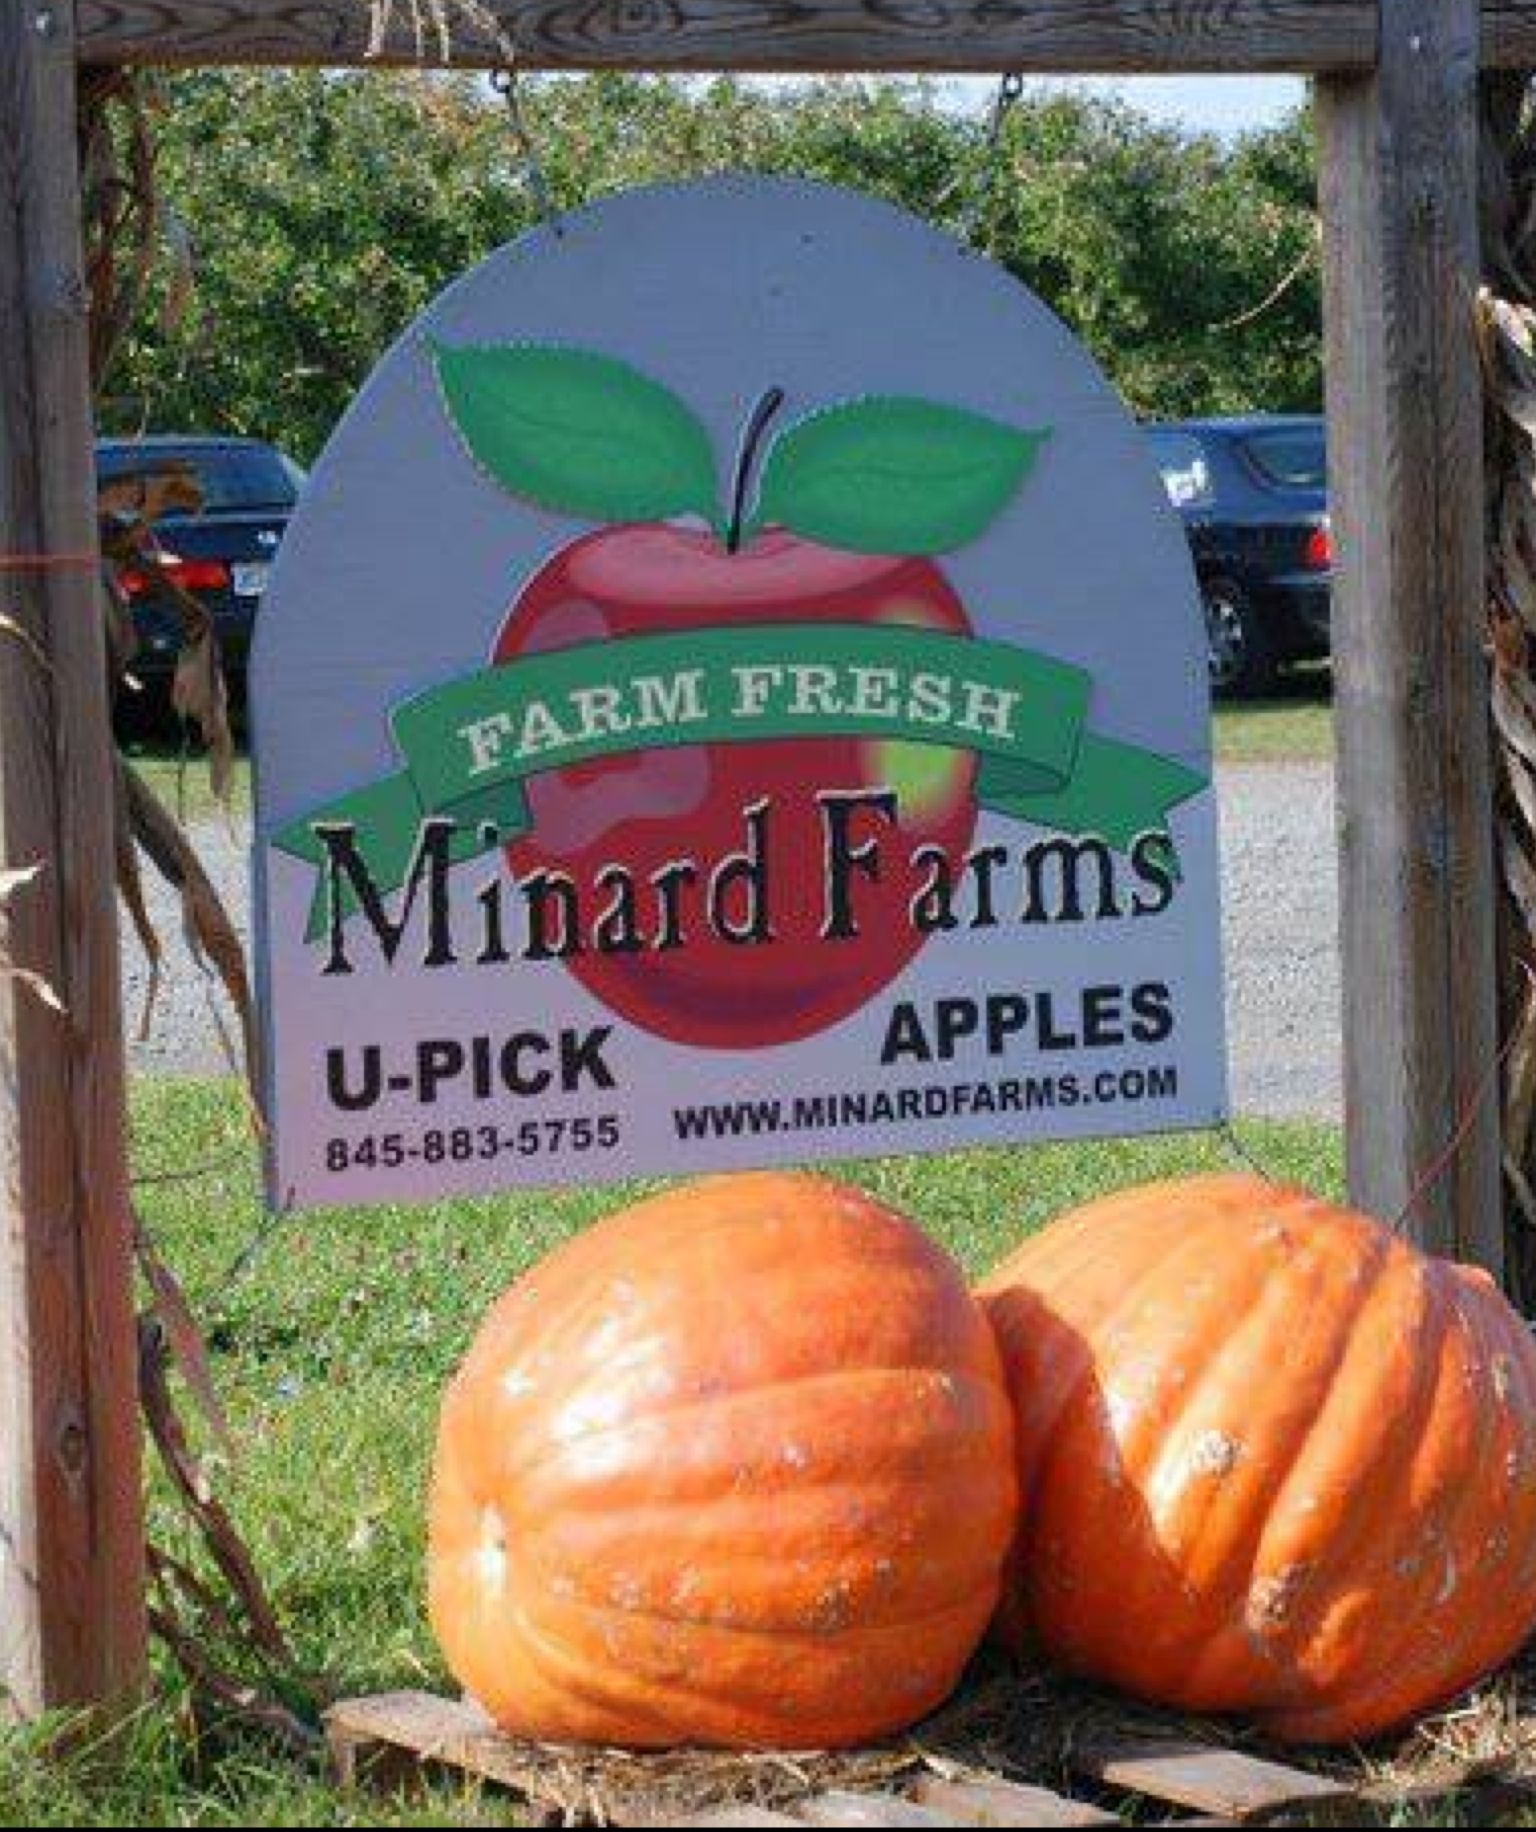 Minard Farms